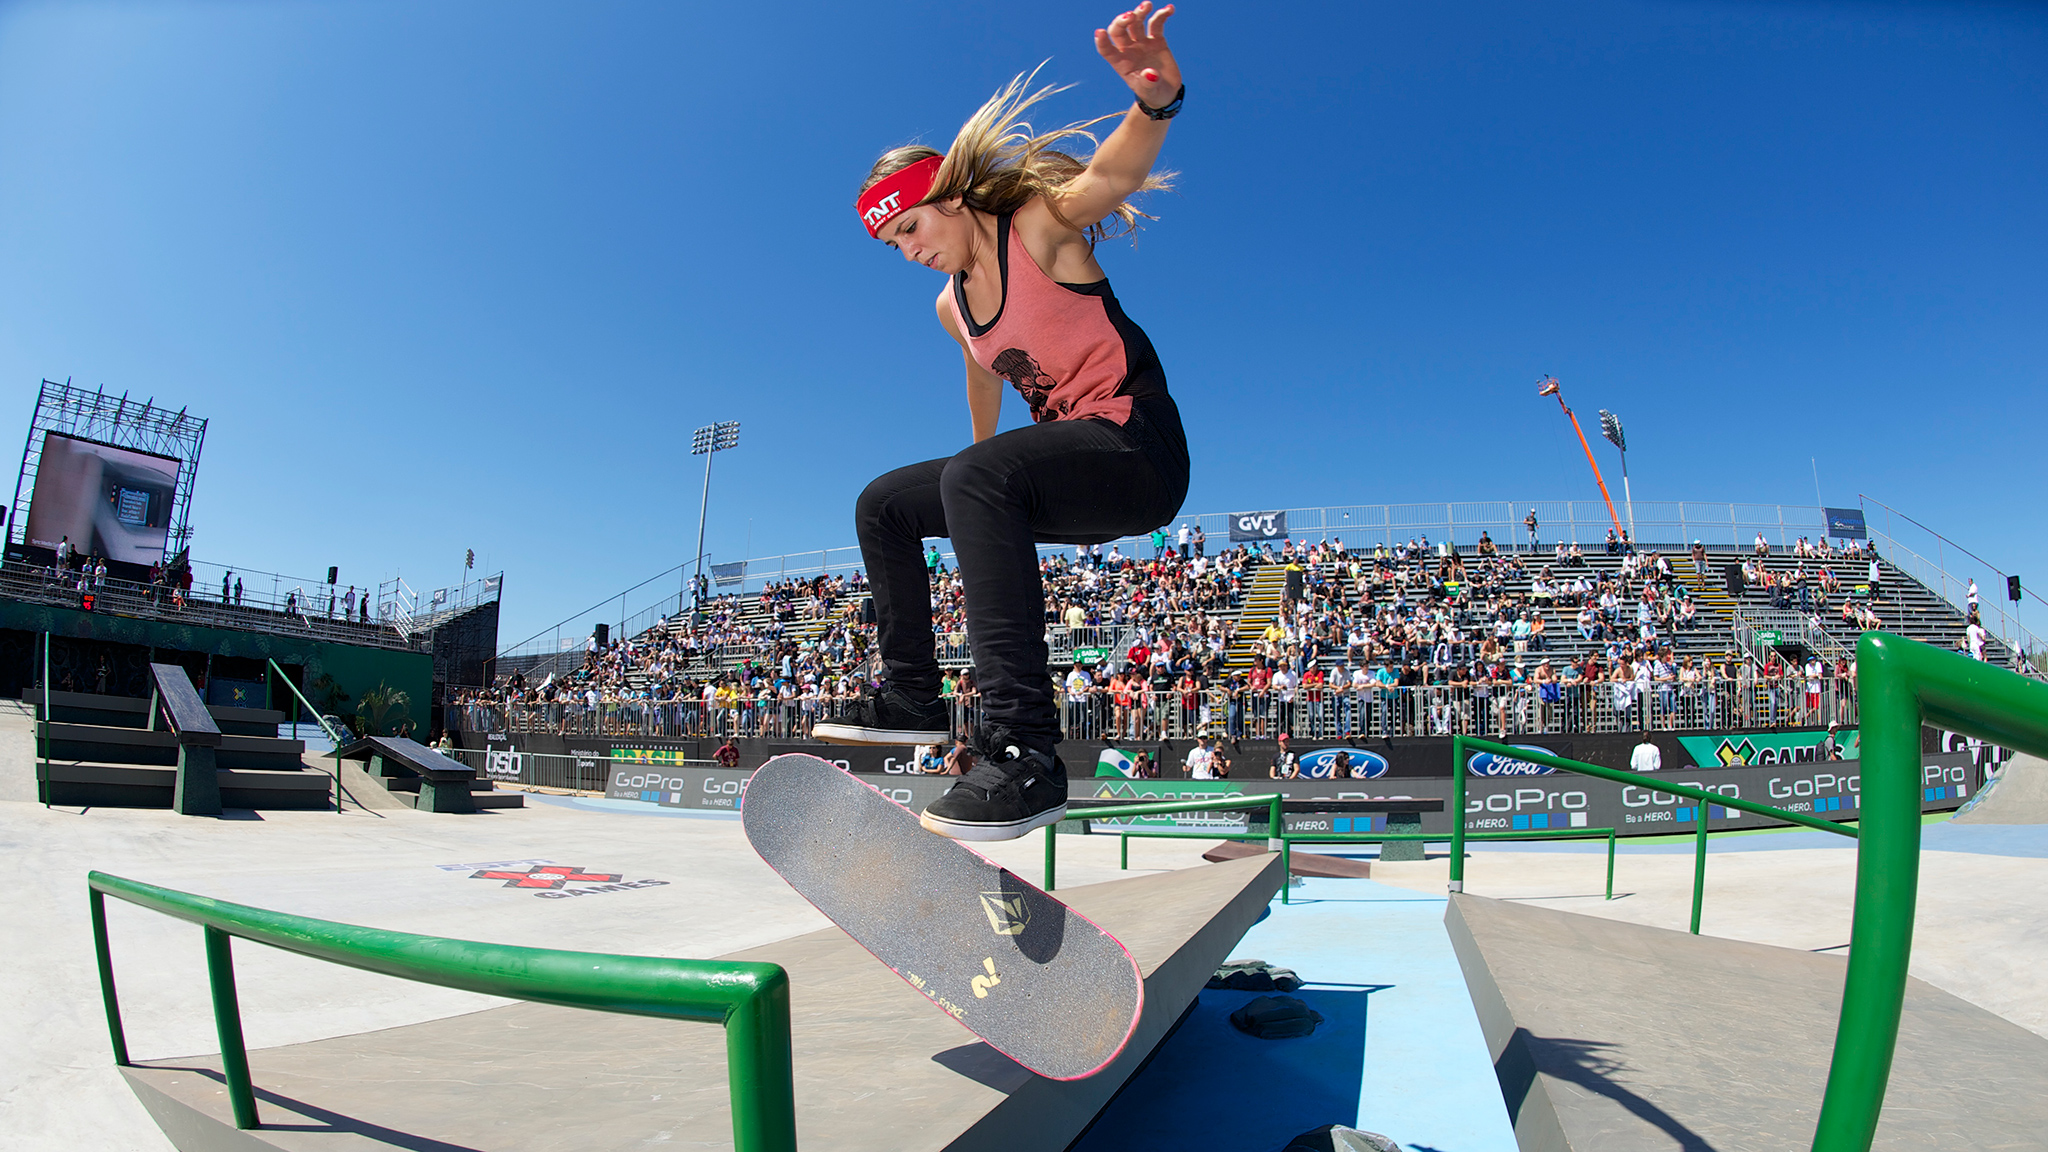 Leticia Bufoni competes in Women's Skateboard Street at X Games Foz do Iguau in Brazil where she won the first of her three X Games gold medals in 2013. Bufoni signed with Nike SB on Friday.